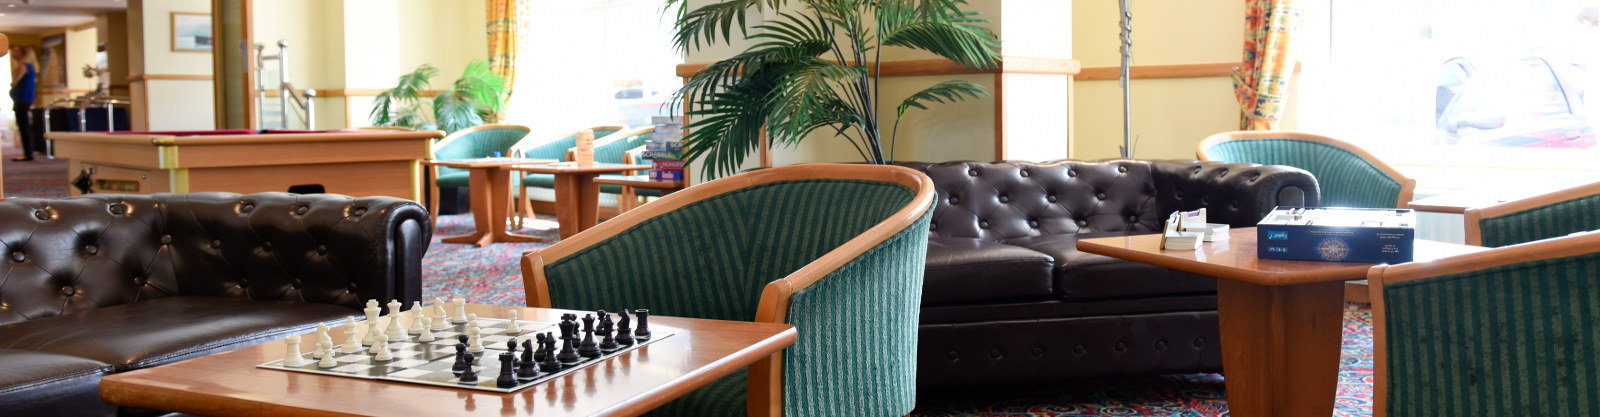 games-area-bar-riviera-hotel-bournemouth